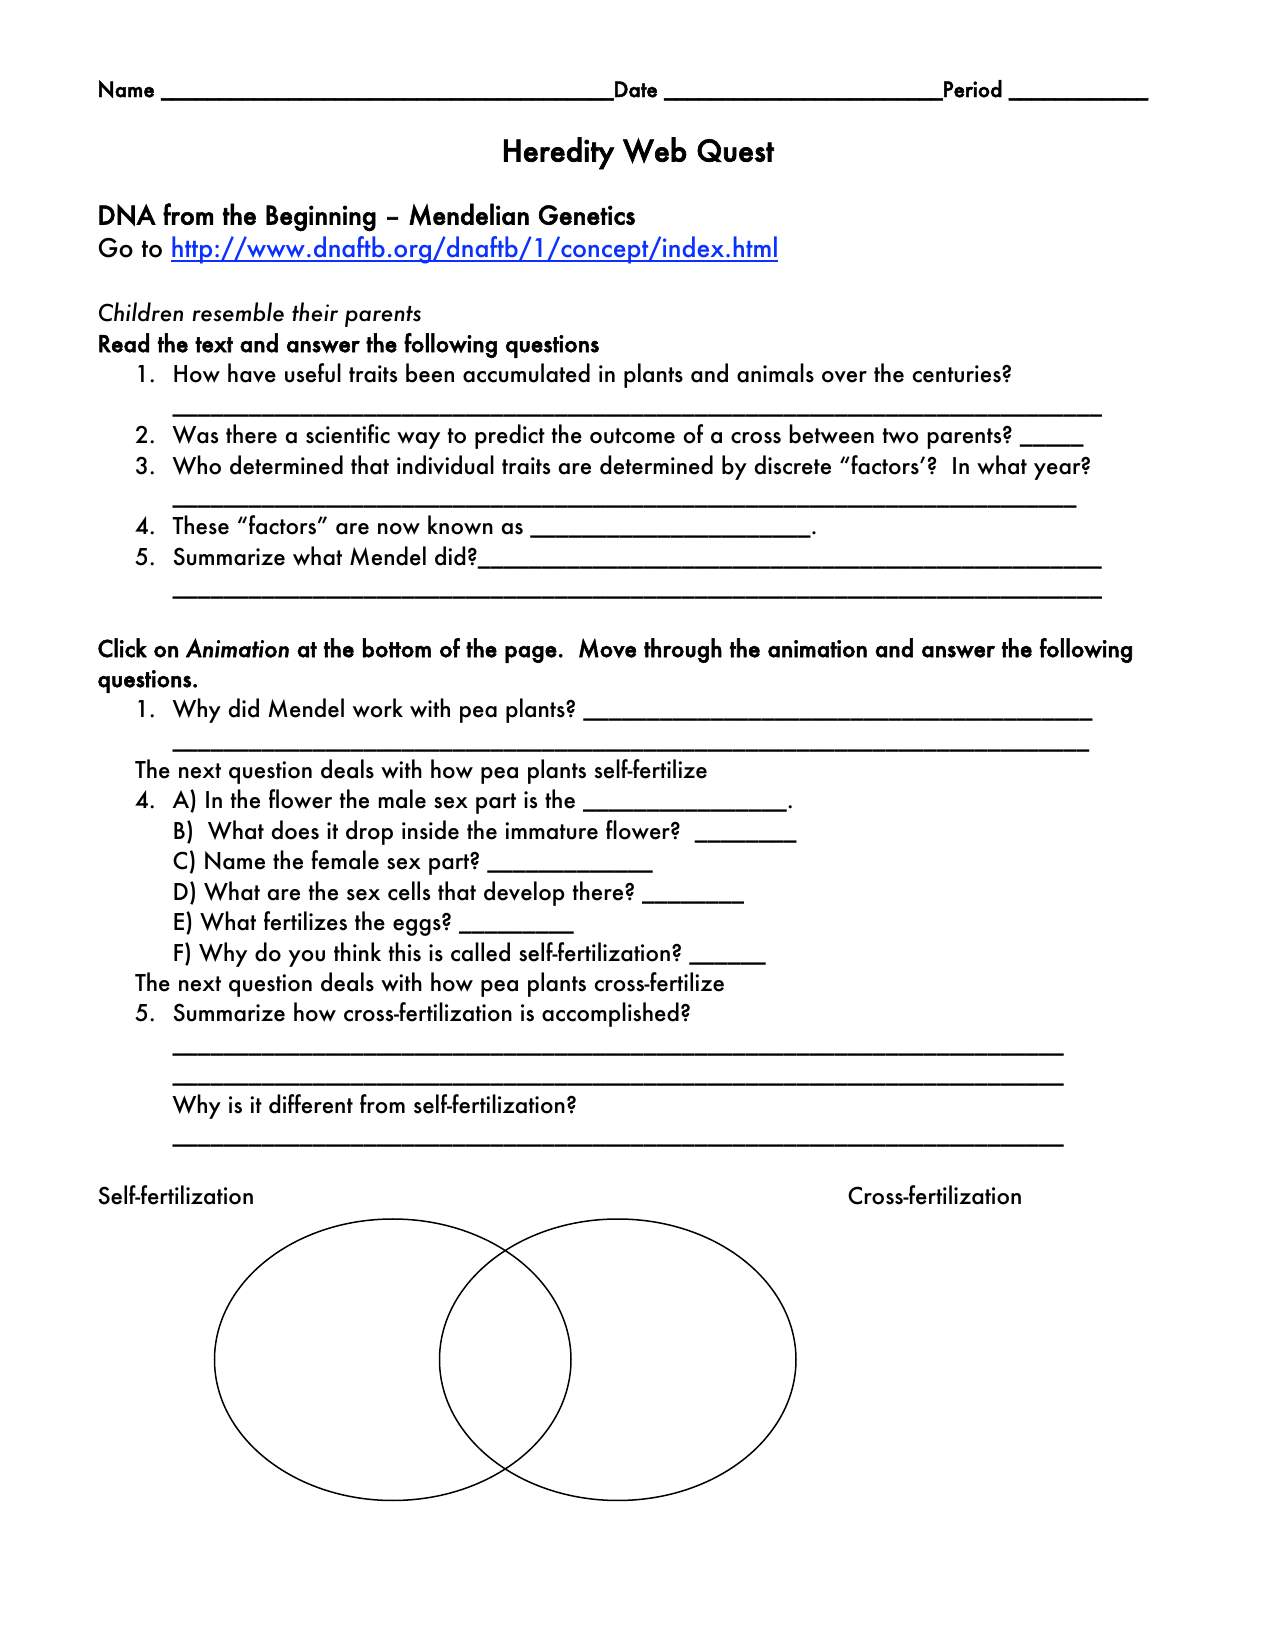 Genetics Webquest Worksheet Answers